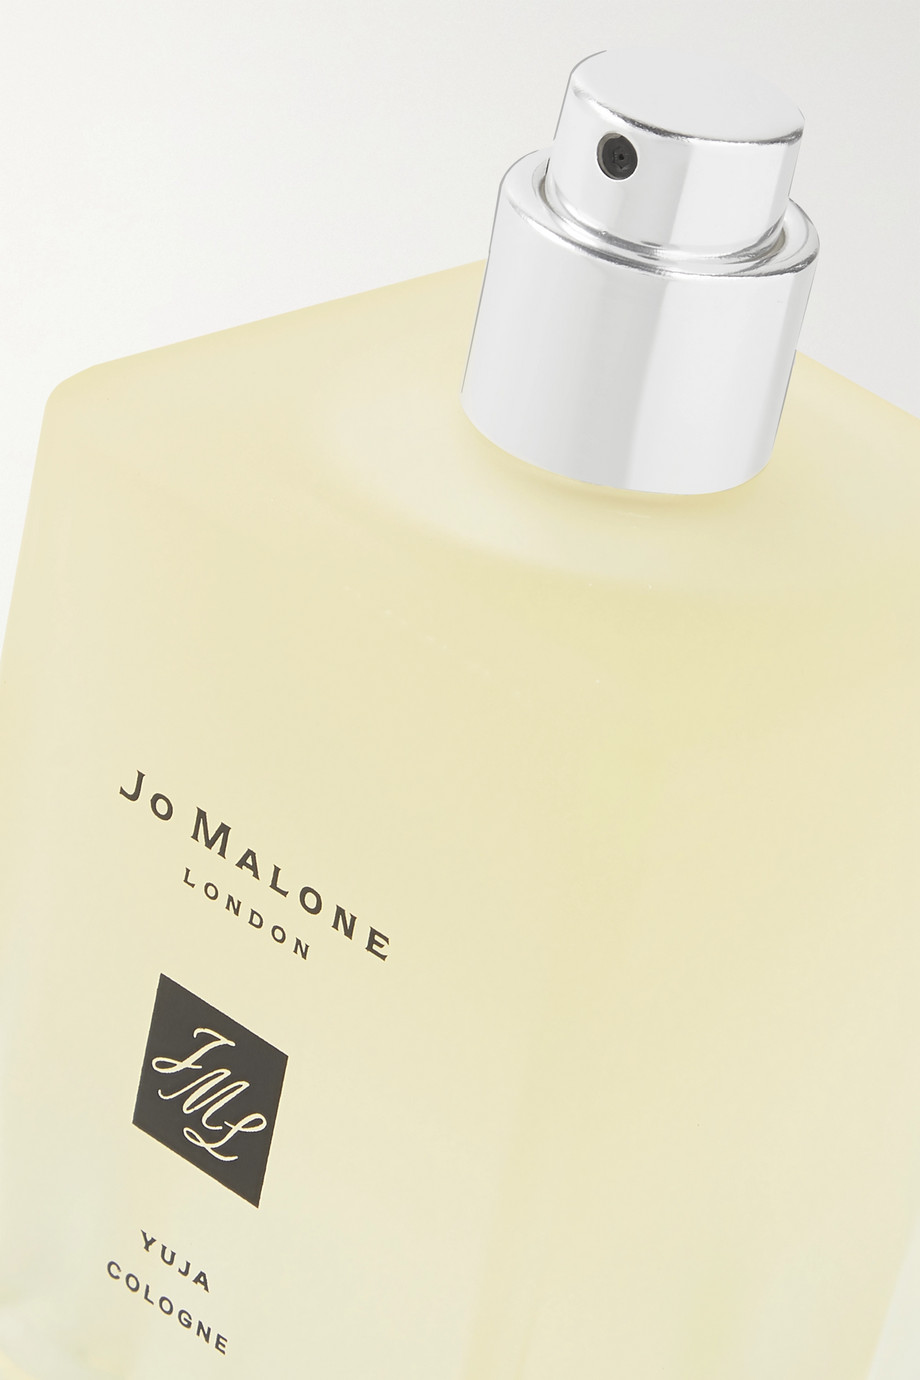 Jo Malone London Yuja cologne, 100ml